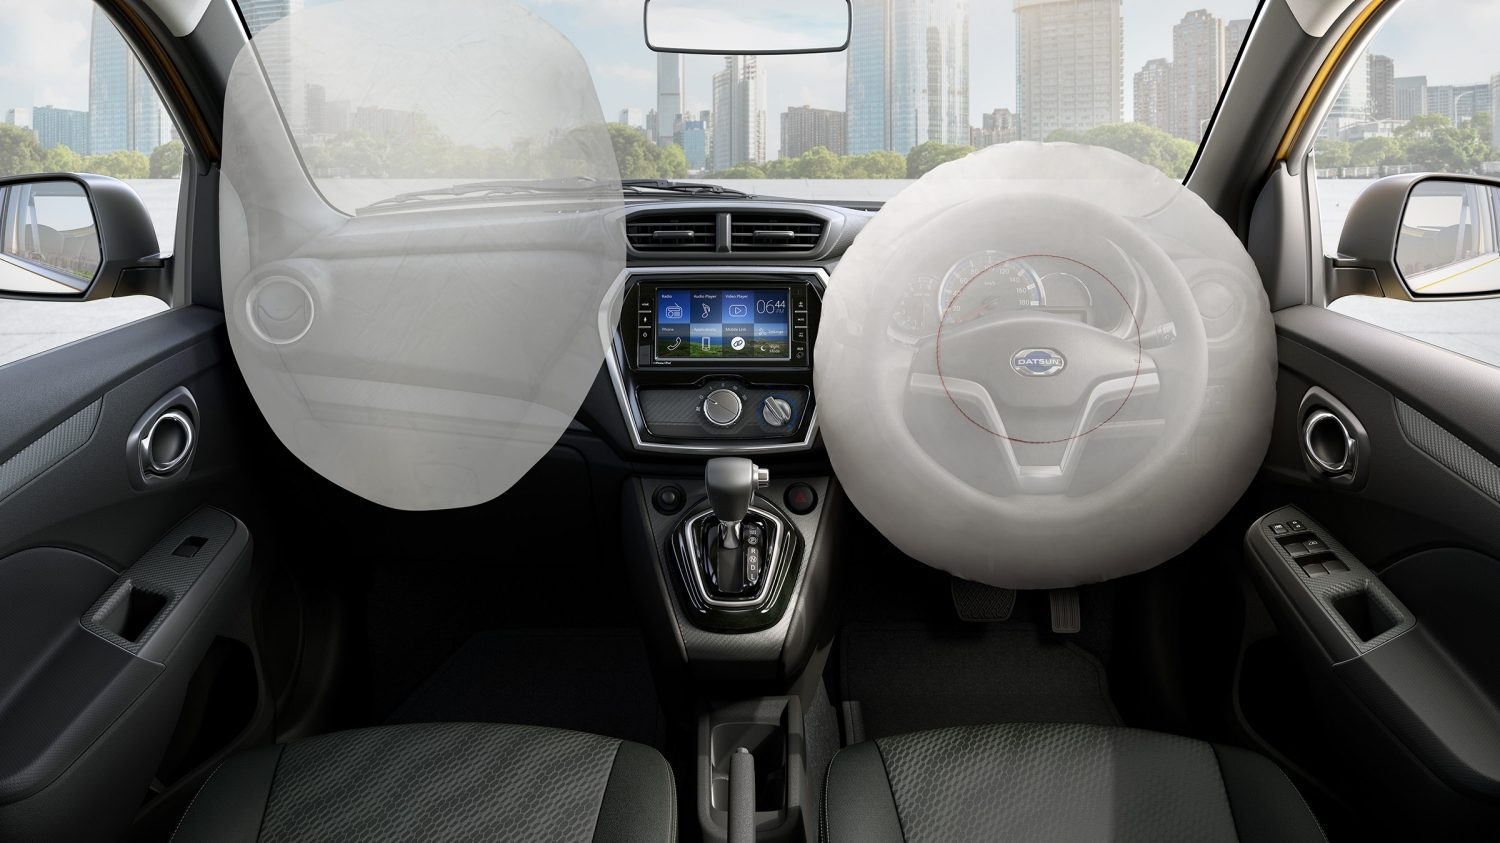 Datsun Cross interior with airbags deployed